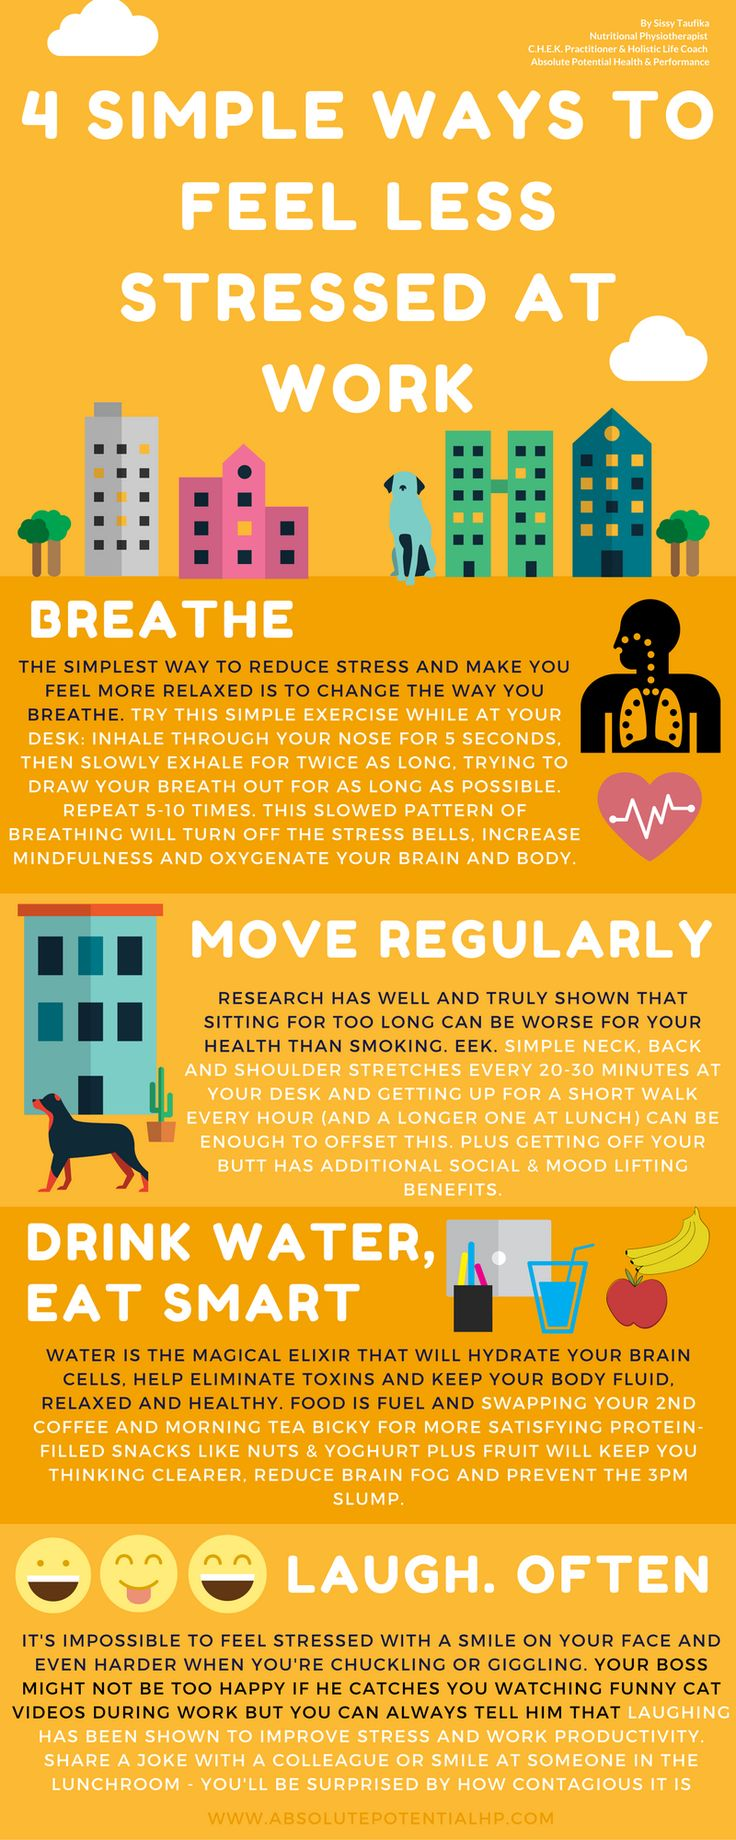 4 simple ways reduce stress at work - by Absolute Potential Physio & Life Coach